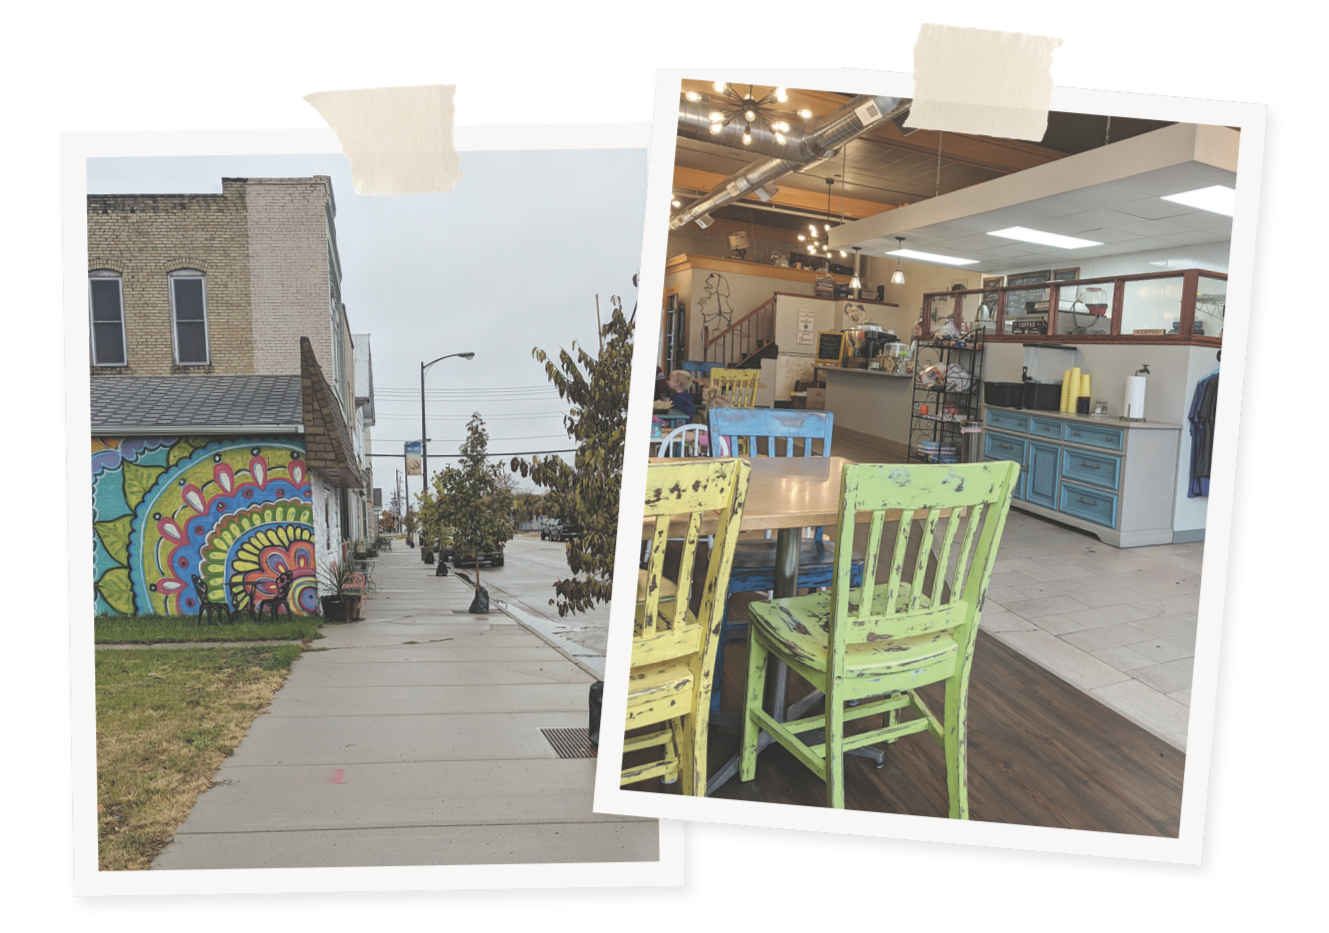 Left: 2nd Street South, Hallock's main stretch. Right: Bean and Brush Creative Coffee // Photos by Ellen Burkhardt